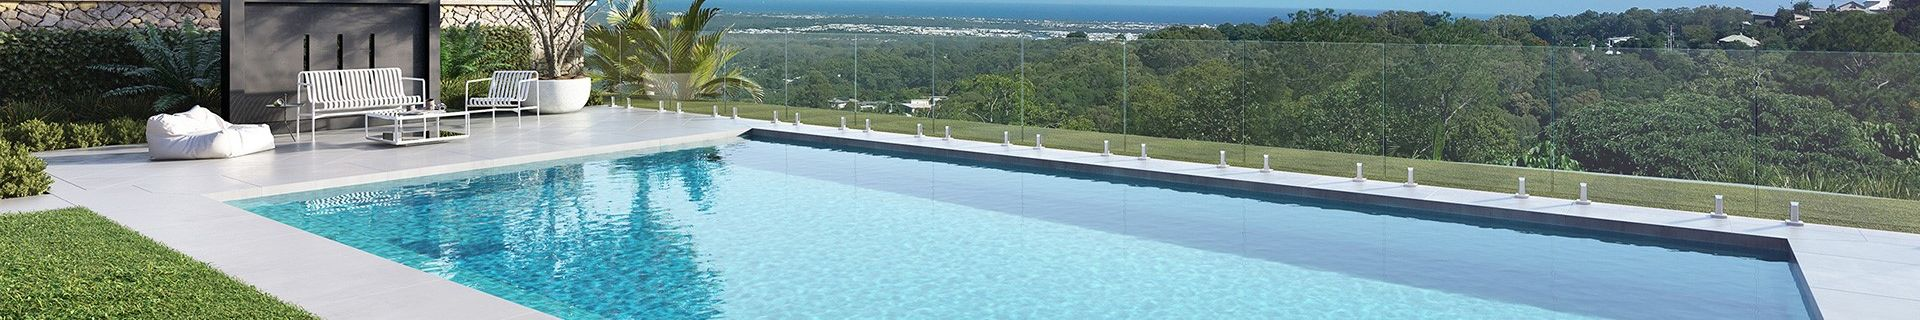 Pool with glass fence.